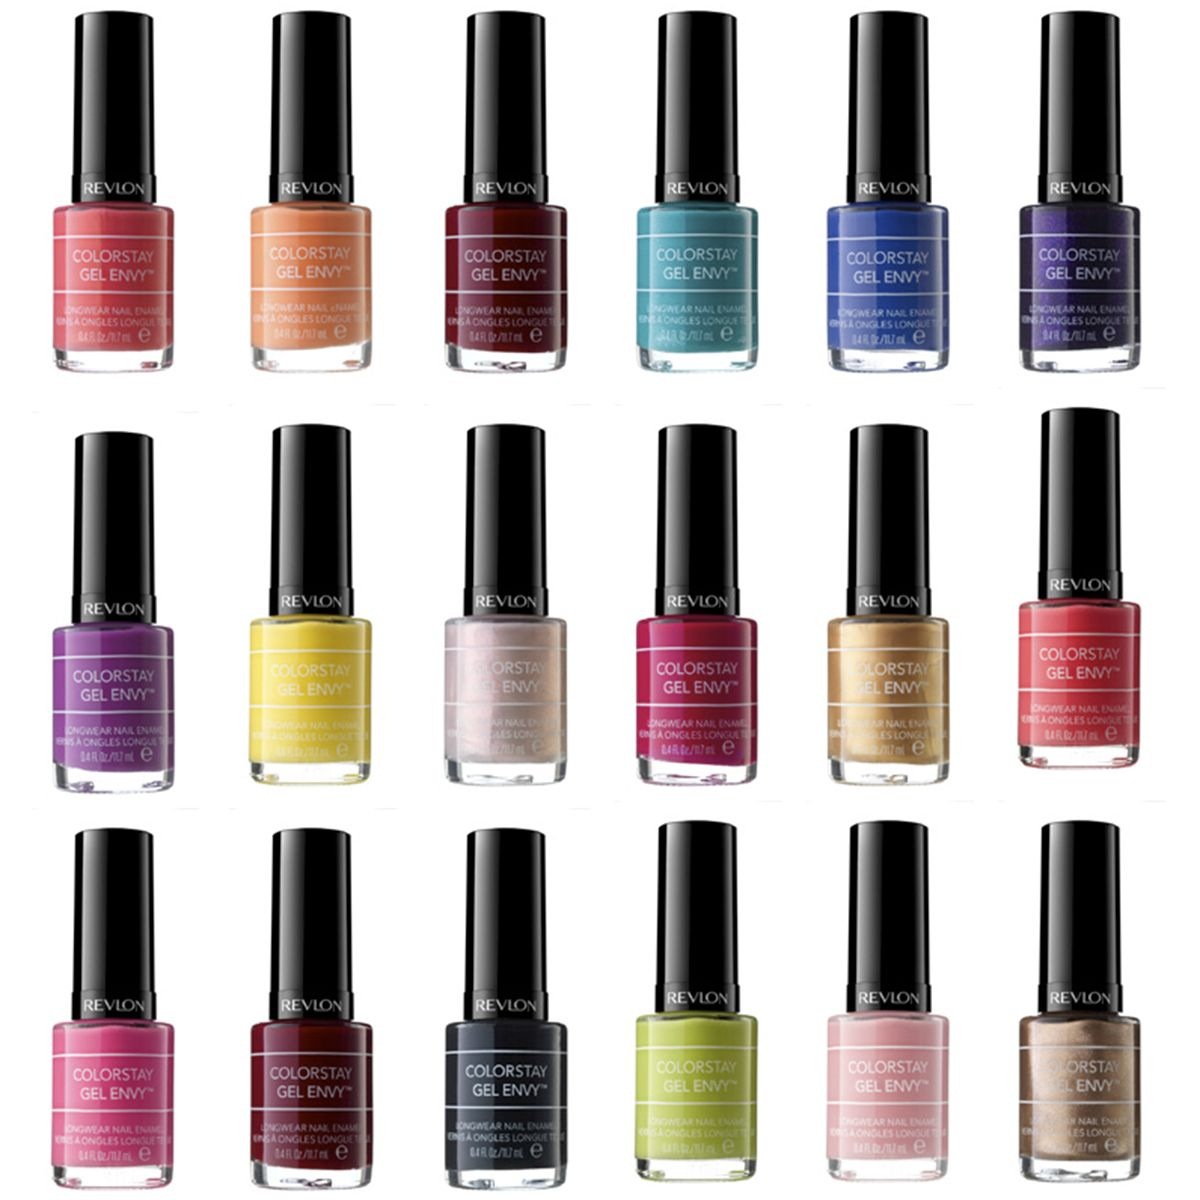 Step by step diy manicure tips colorstay gel envy manicure and envy revlon colorstay gel envy longwear nail enamel nail tips how to a manicure at nvjuhfo Image collections